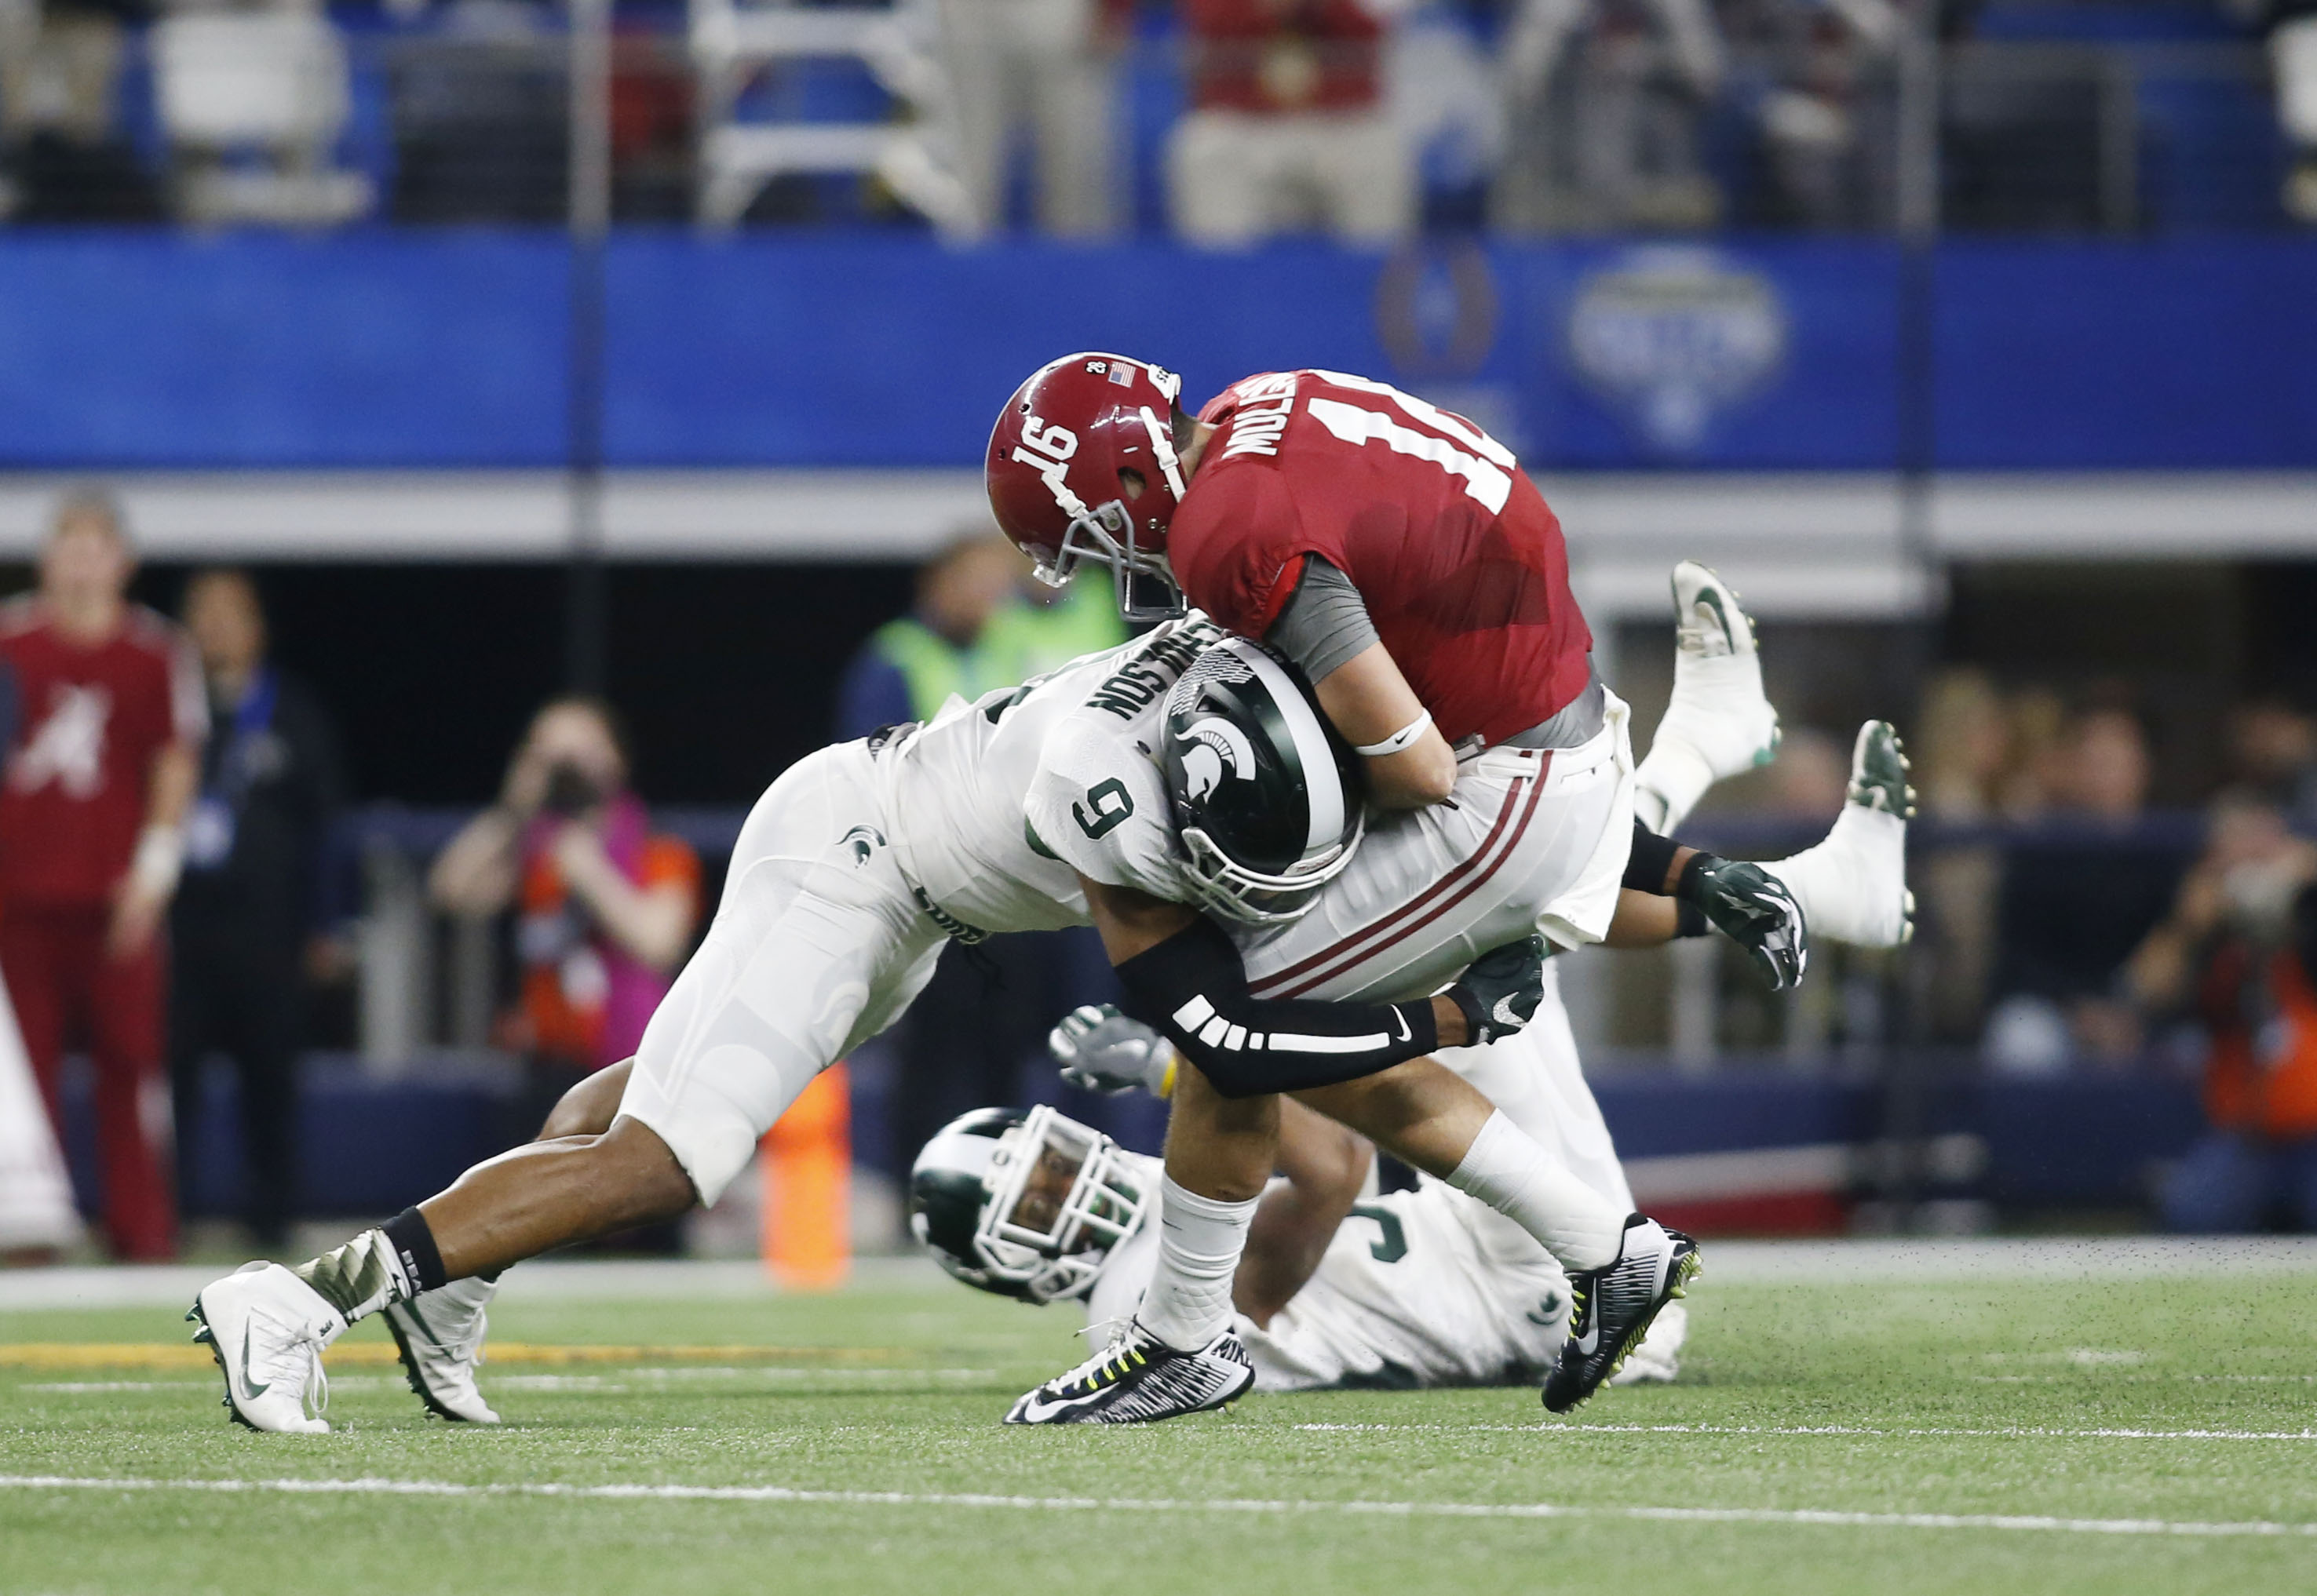 9029210-ncaa-football-cotton-bowl-michigan-state-vs-alabama